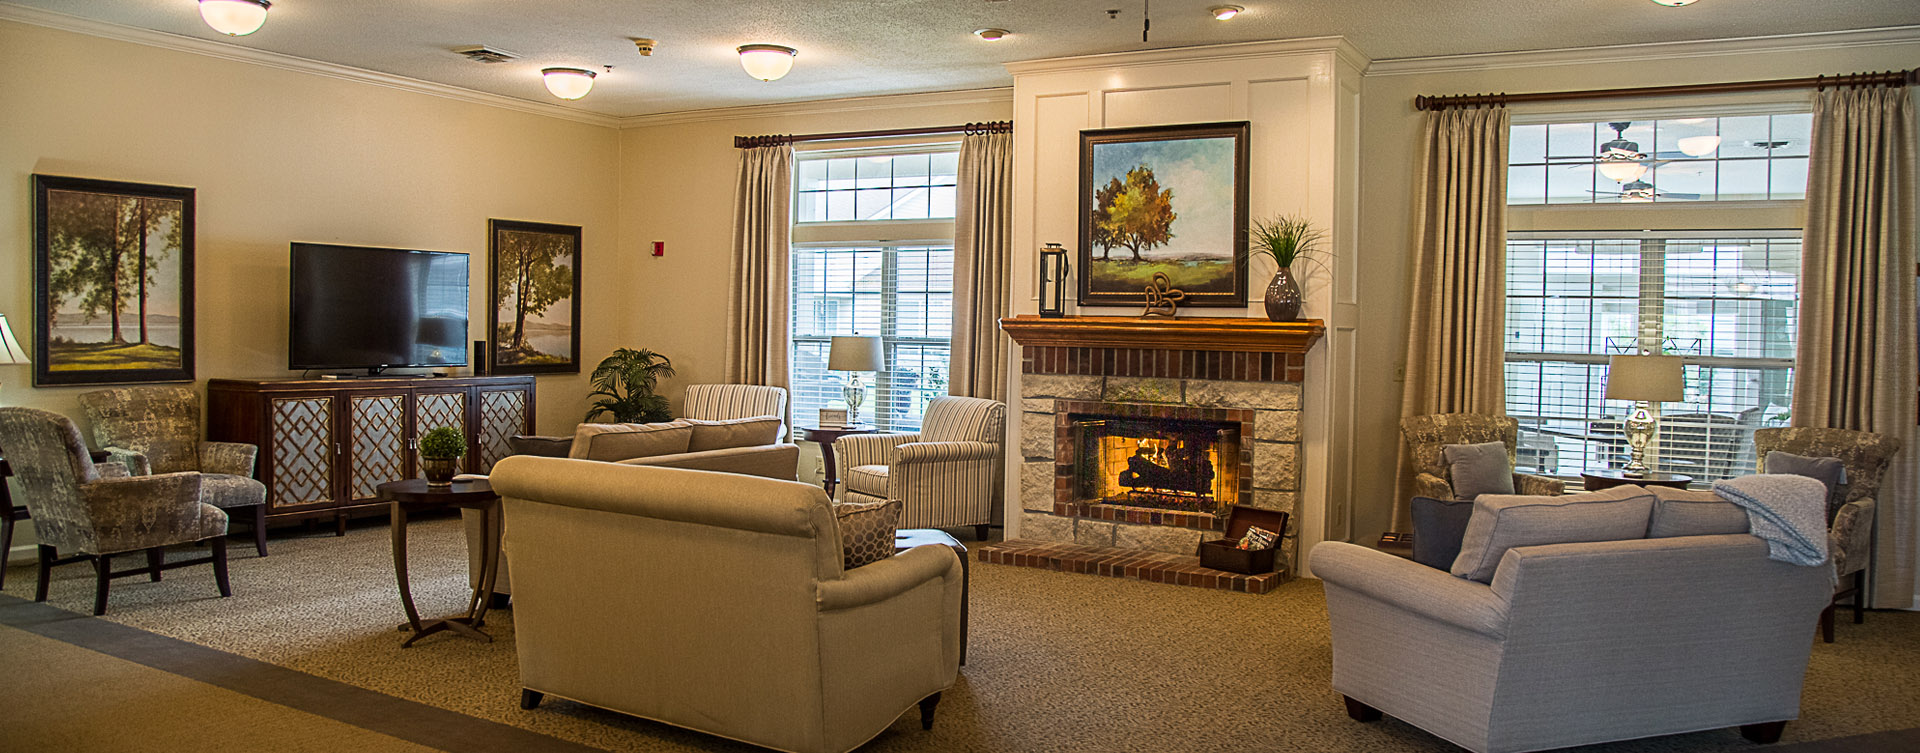 Socialize with friends in the living room at Bickford of Davenport